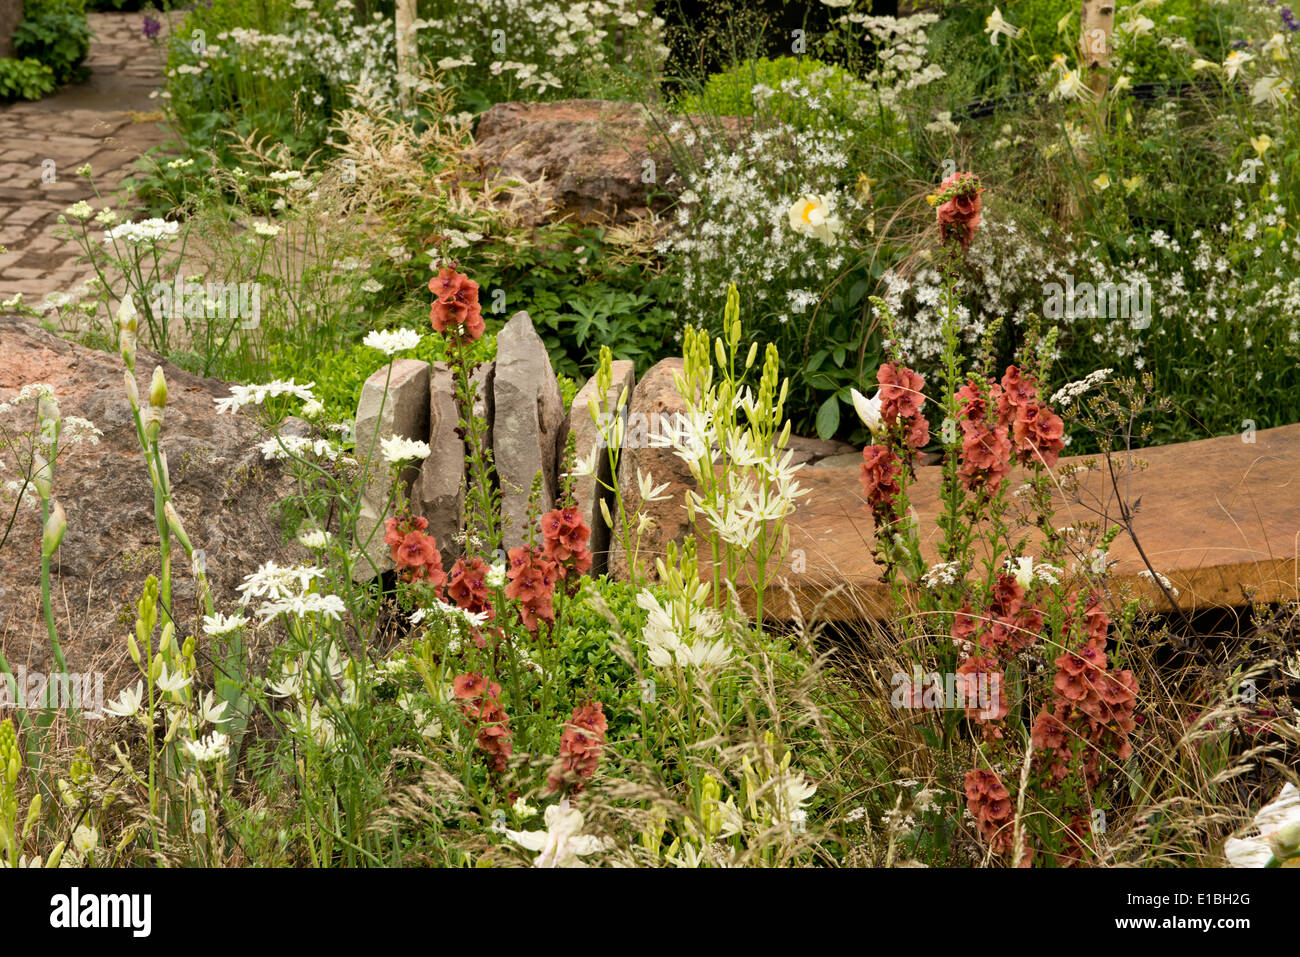 A close-up of flowers in The Vital Earth Night Sky Garden at the Chelsea Flower Show 2014, London, UK - Stock Image